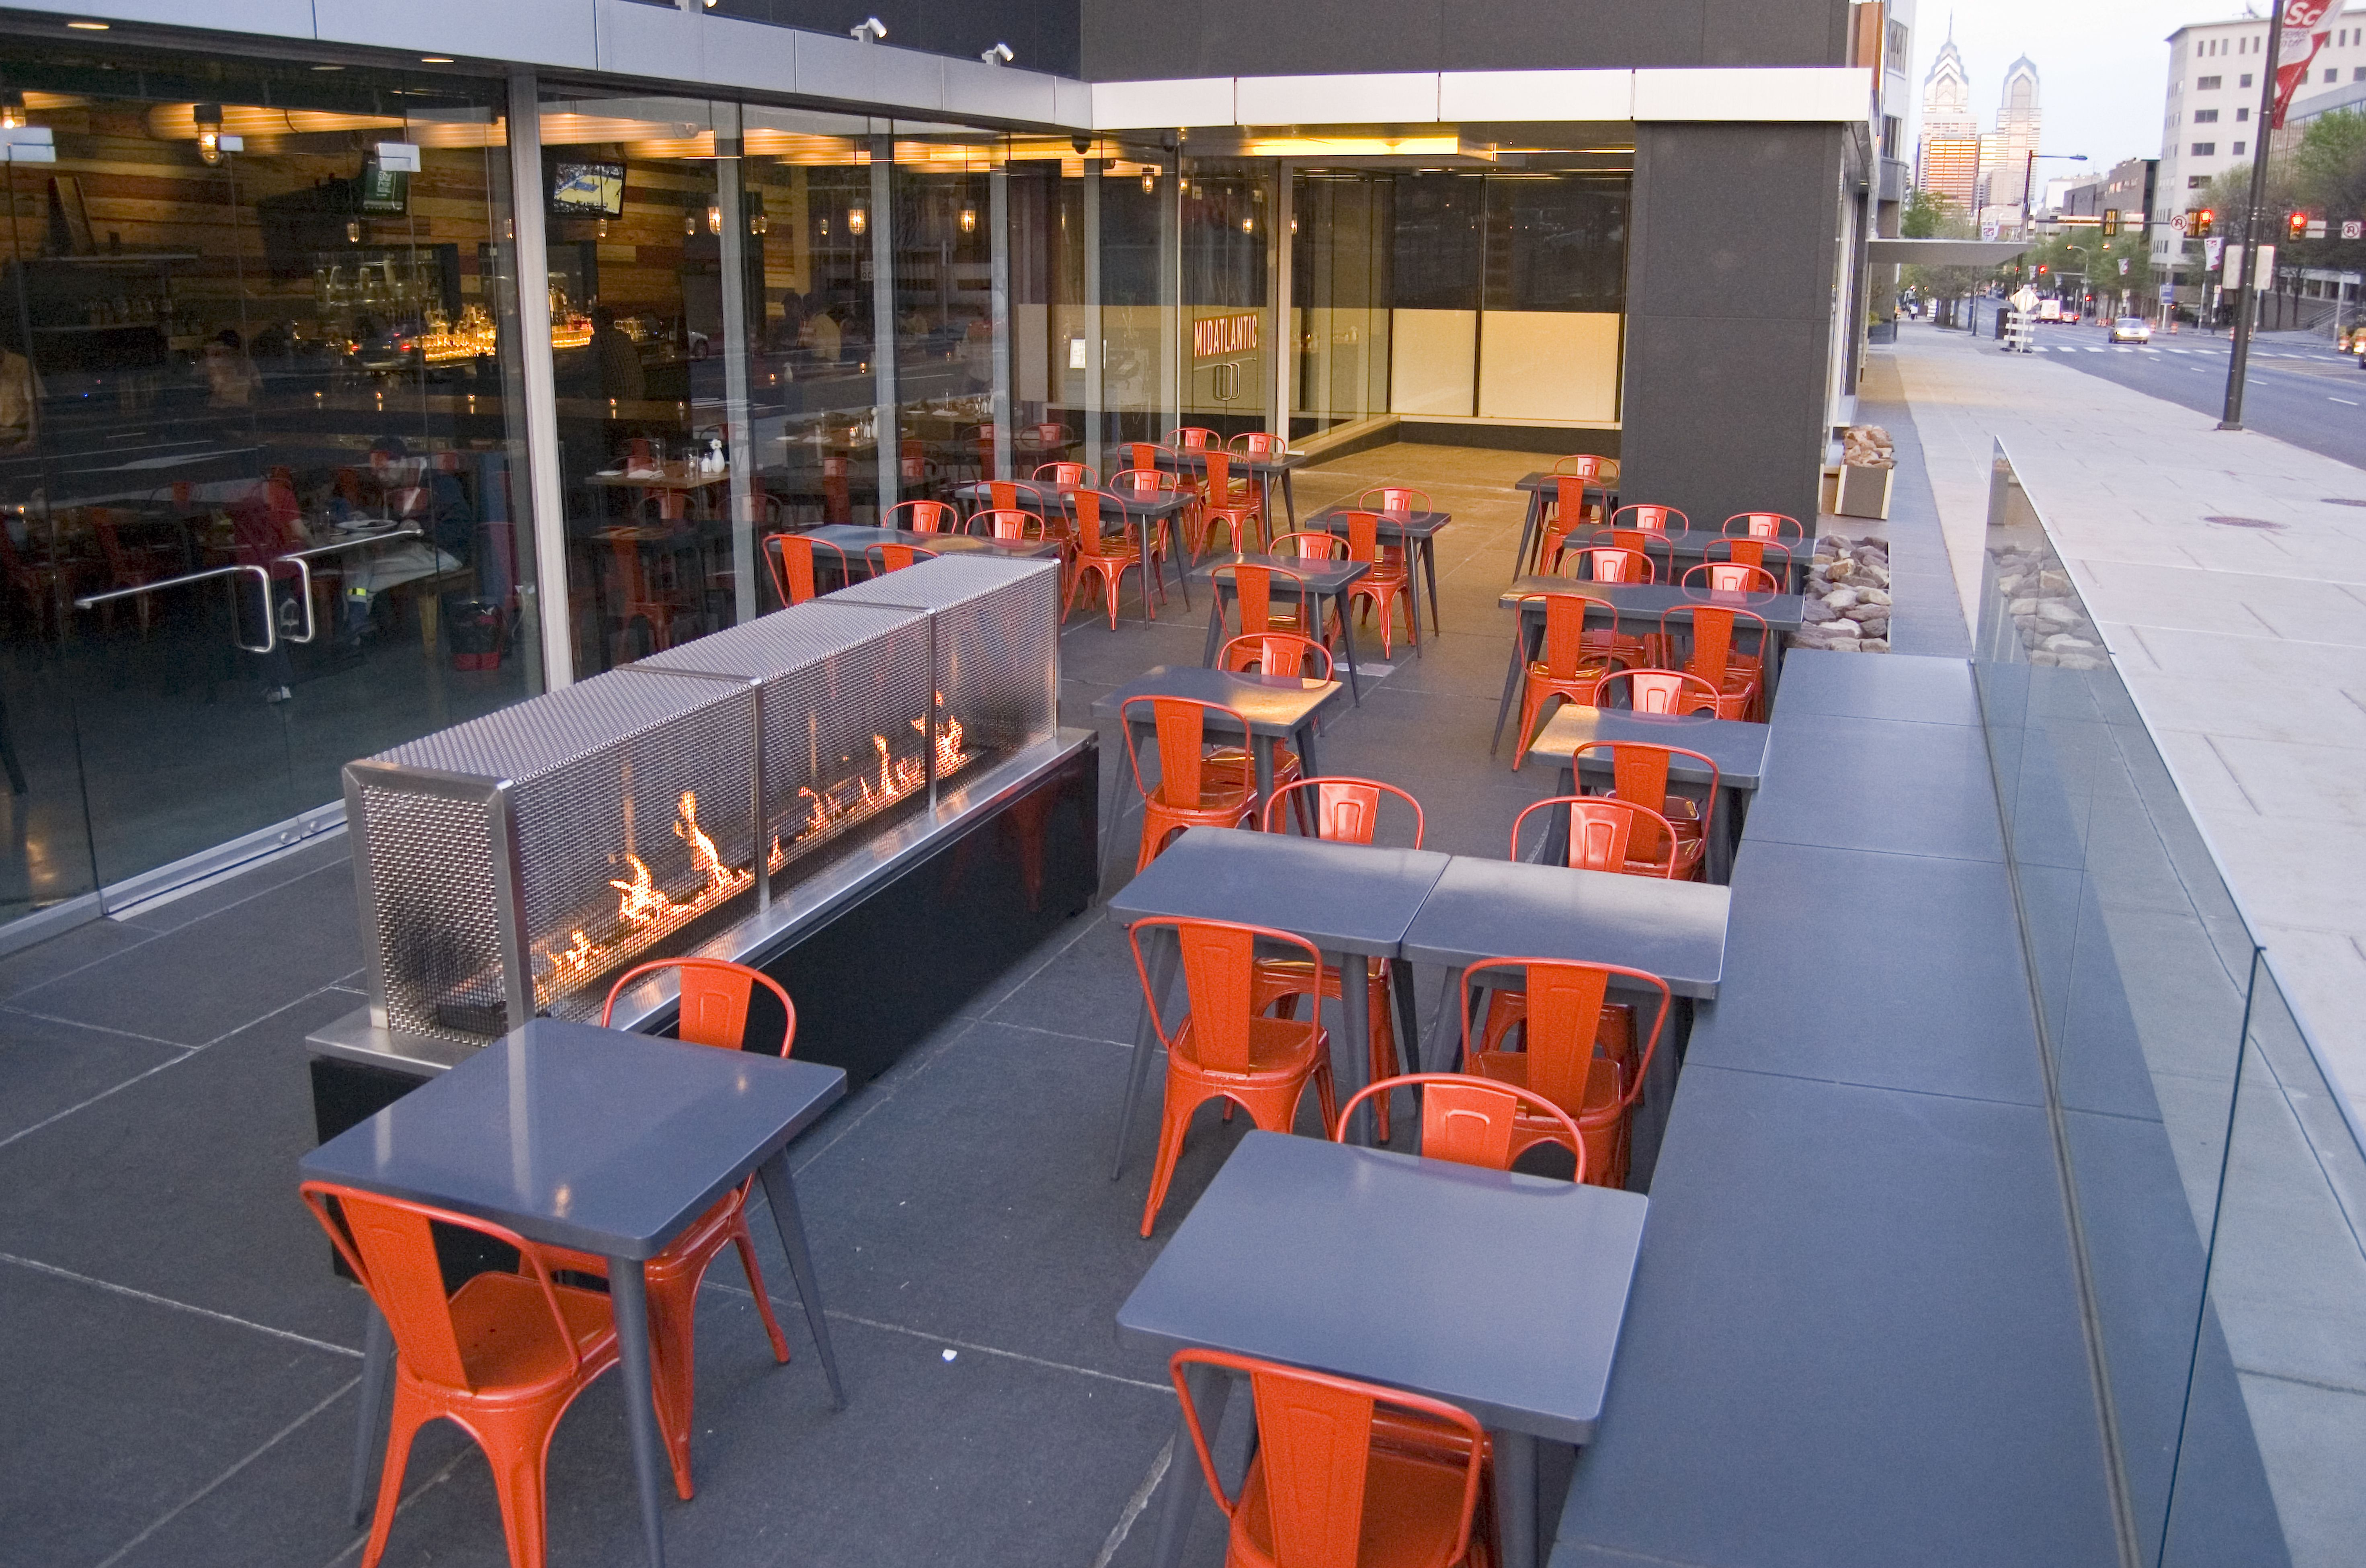 Restaurant patio design  pop of color in the chairs | Design | restaurant patios | Pinterest